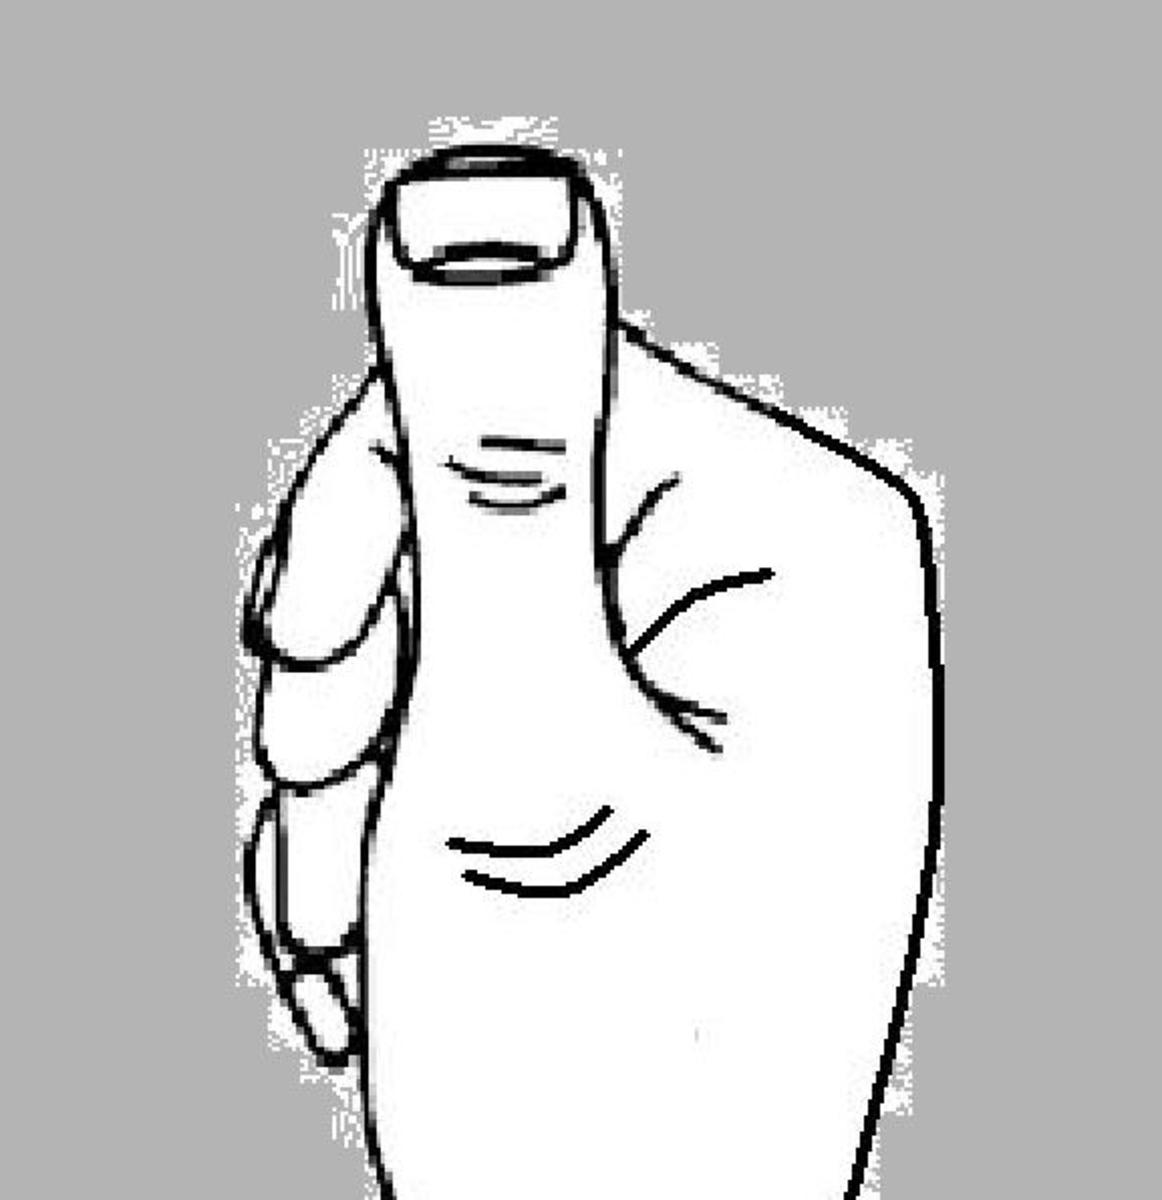 Clubbed or murderer's thumb in palm reading